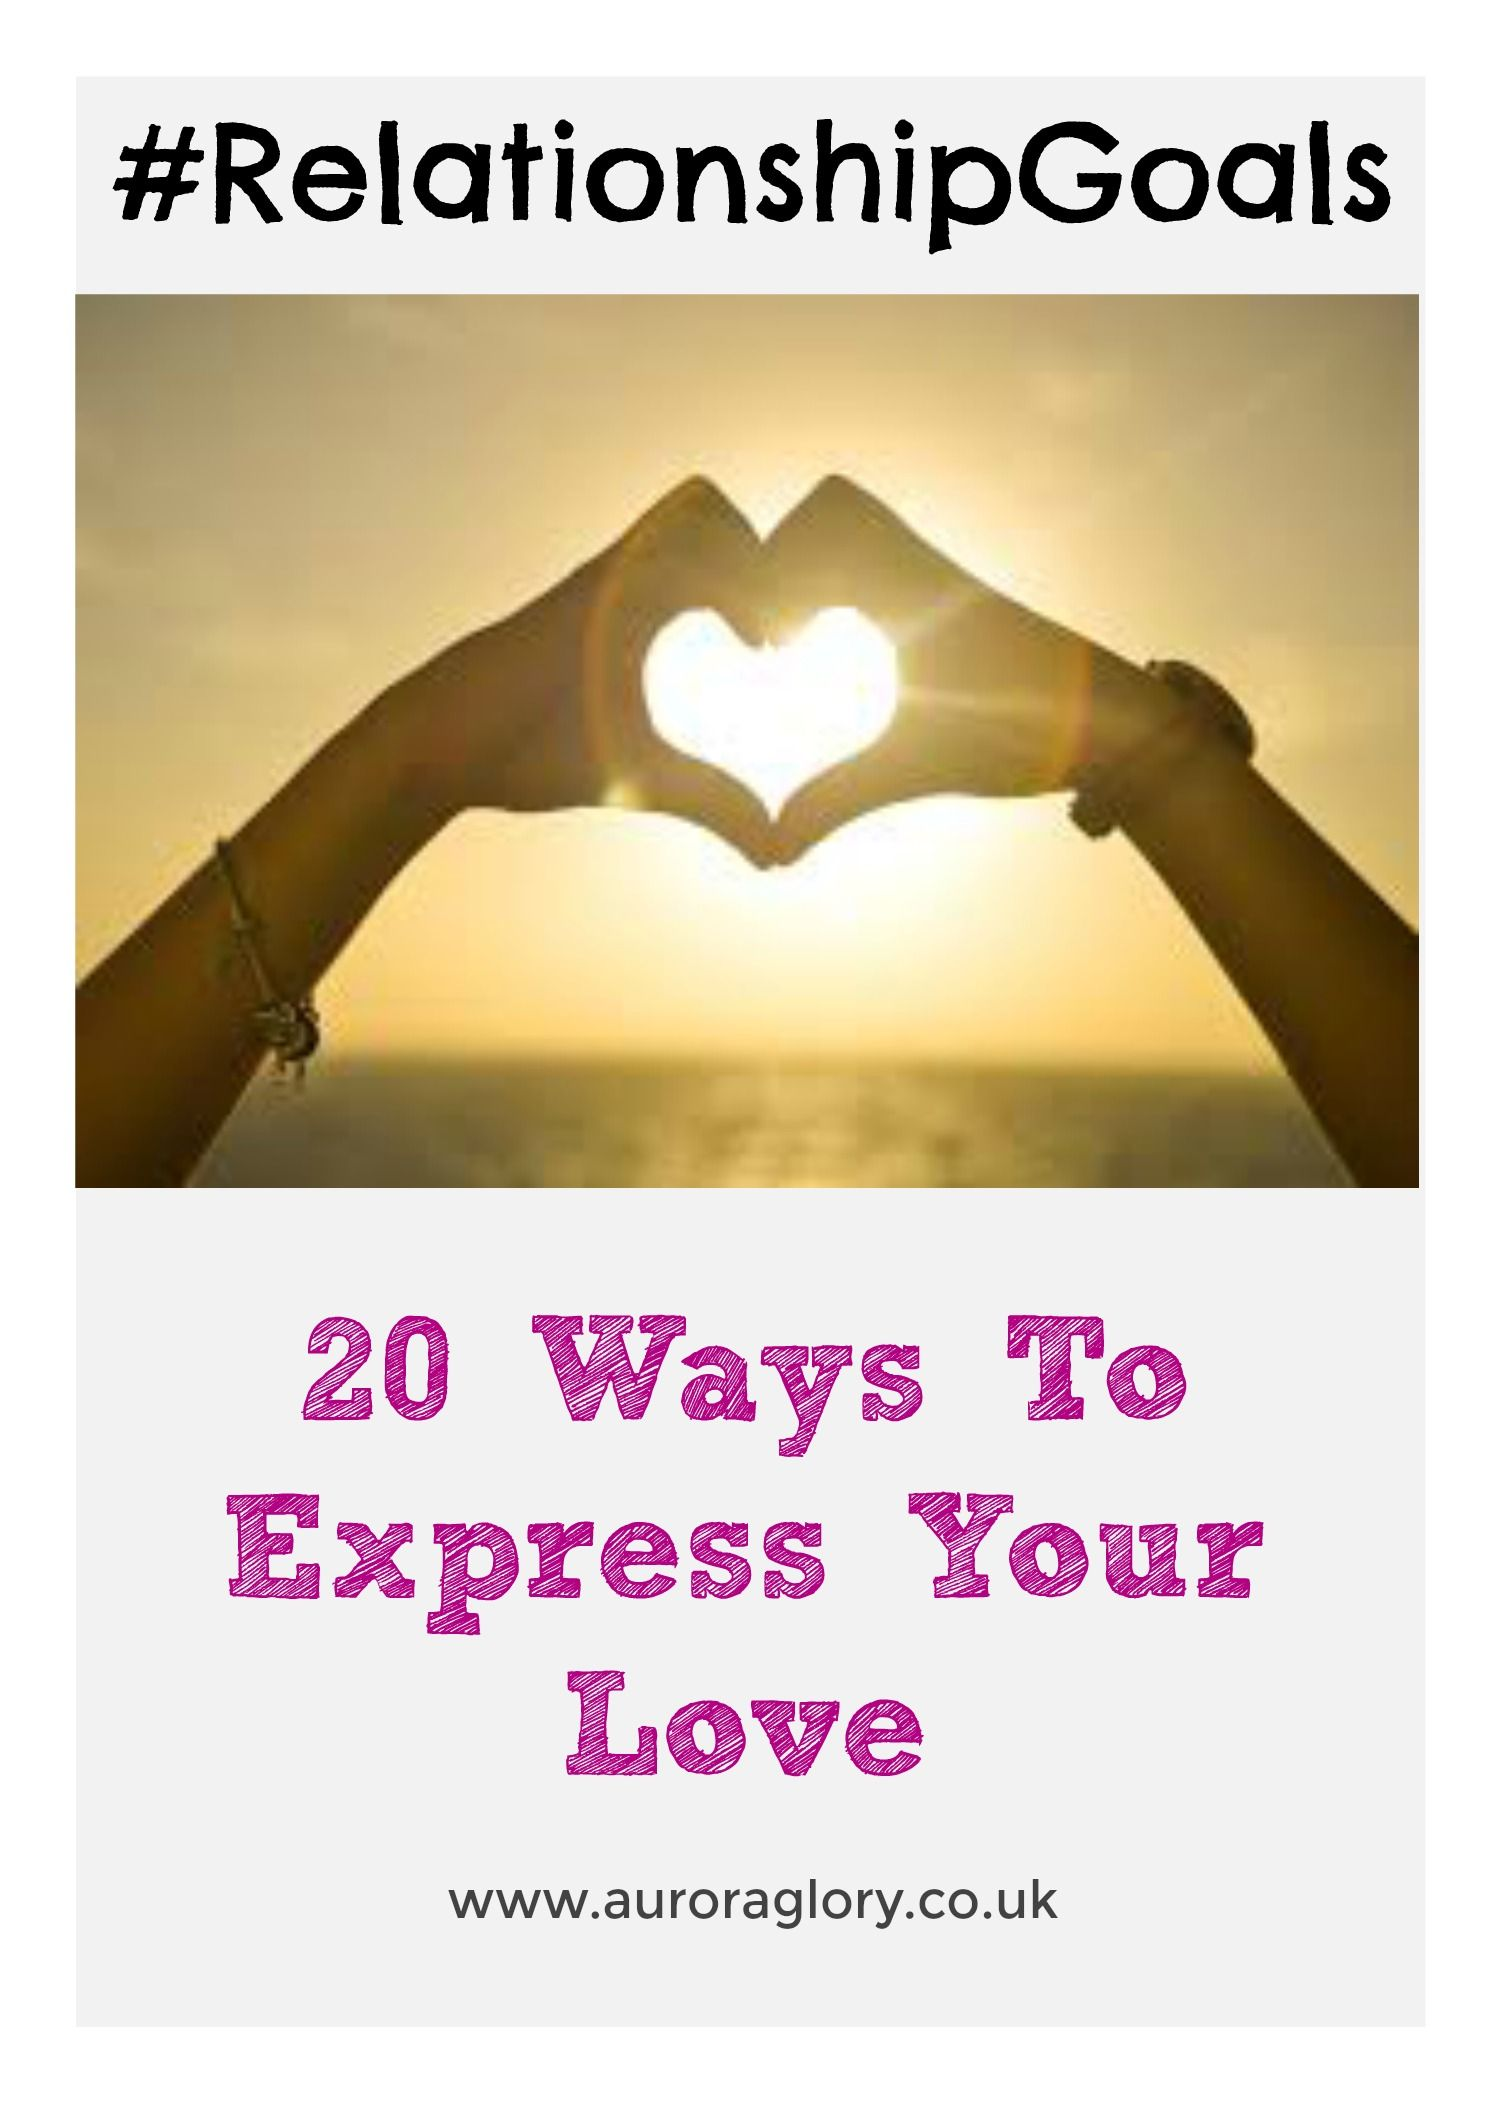 Relationship Advice - 20 Ways To Make Sure Your Partner Knows How Much You Love Them. Relationship Goals